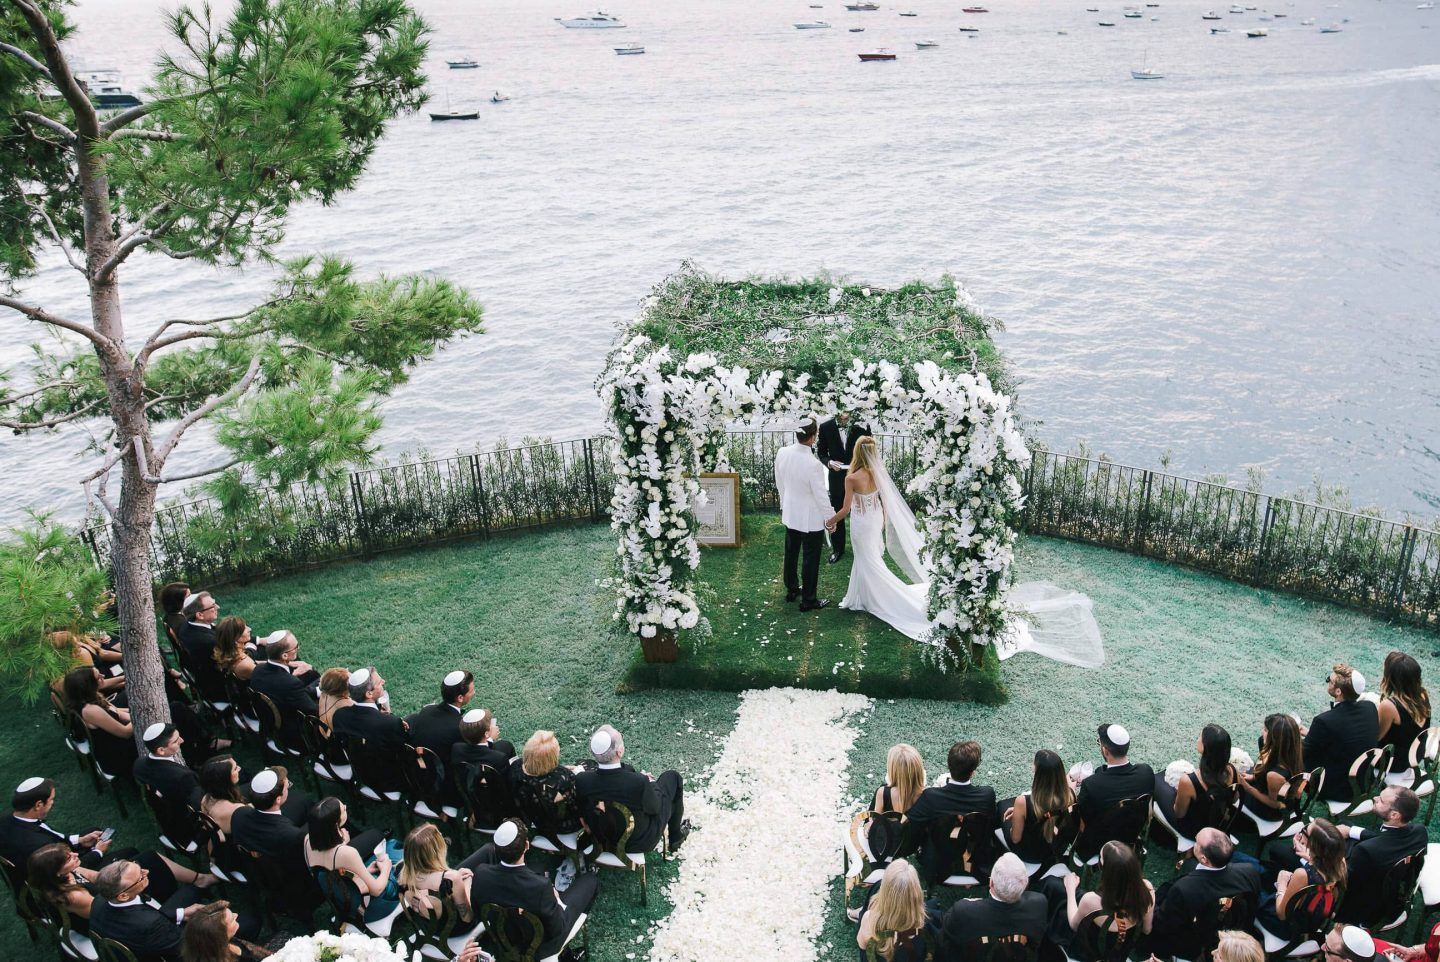 Outdoor ceremony at this Positano wedding weekend in Villa Tre Ville | Photo by Gianni di Natale